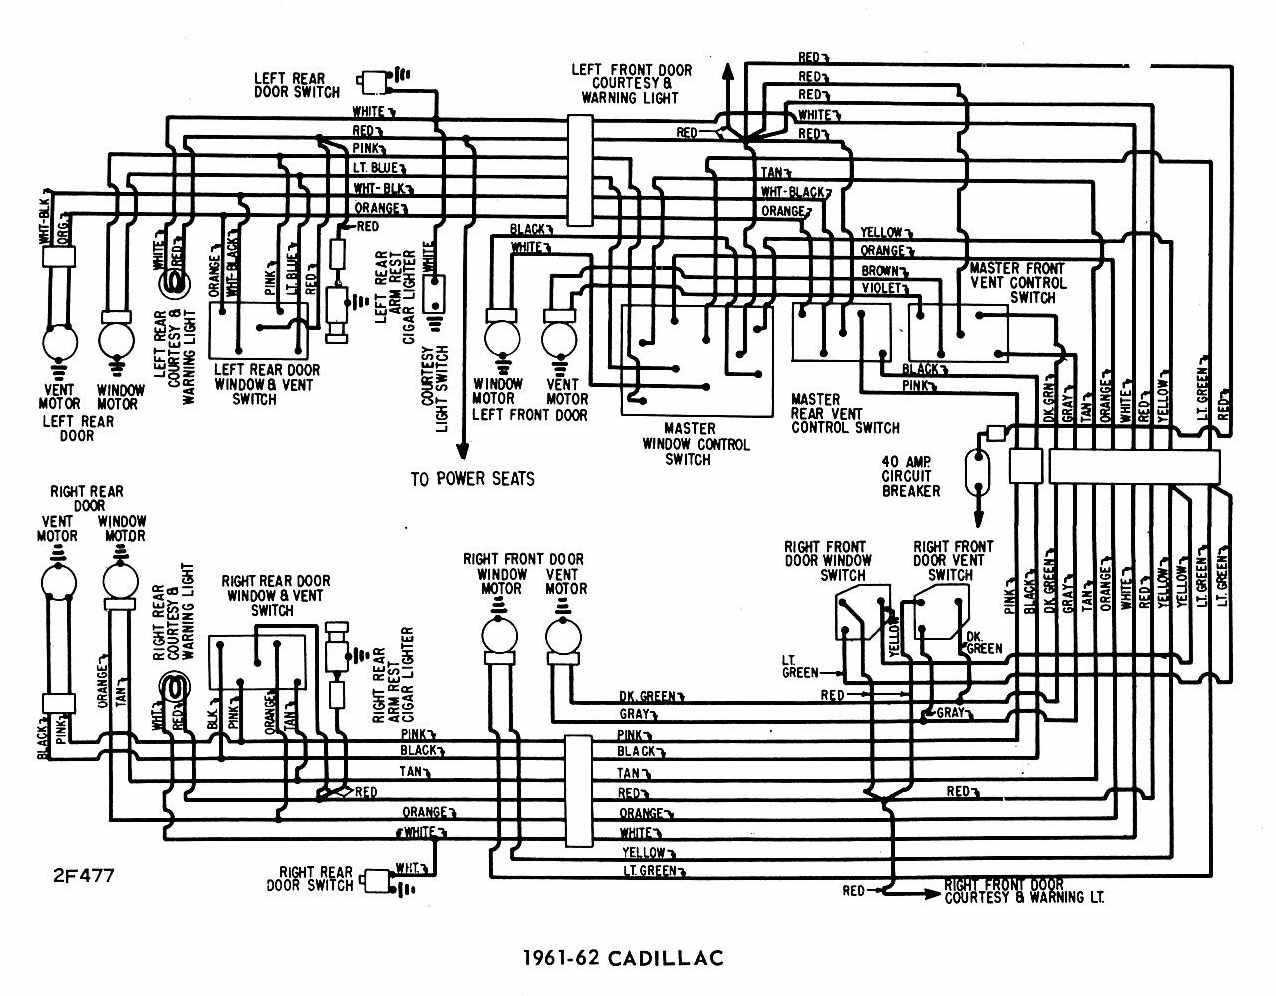 1967 cadillac wiring diagram wire center u2022 rh inkshirts co 1999 Cadillac DeVille Wiring-Diagram 1967 cadillac fleetwood wiring diagram